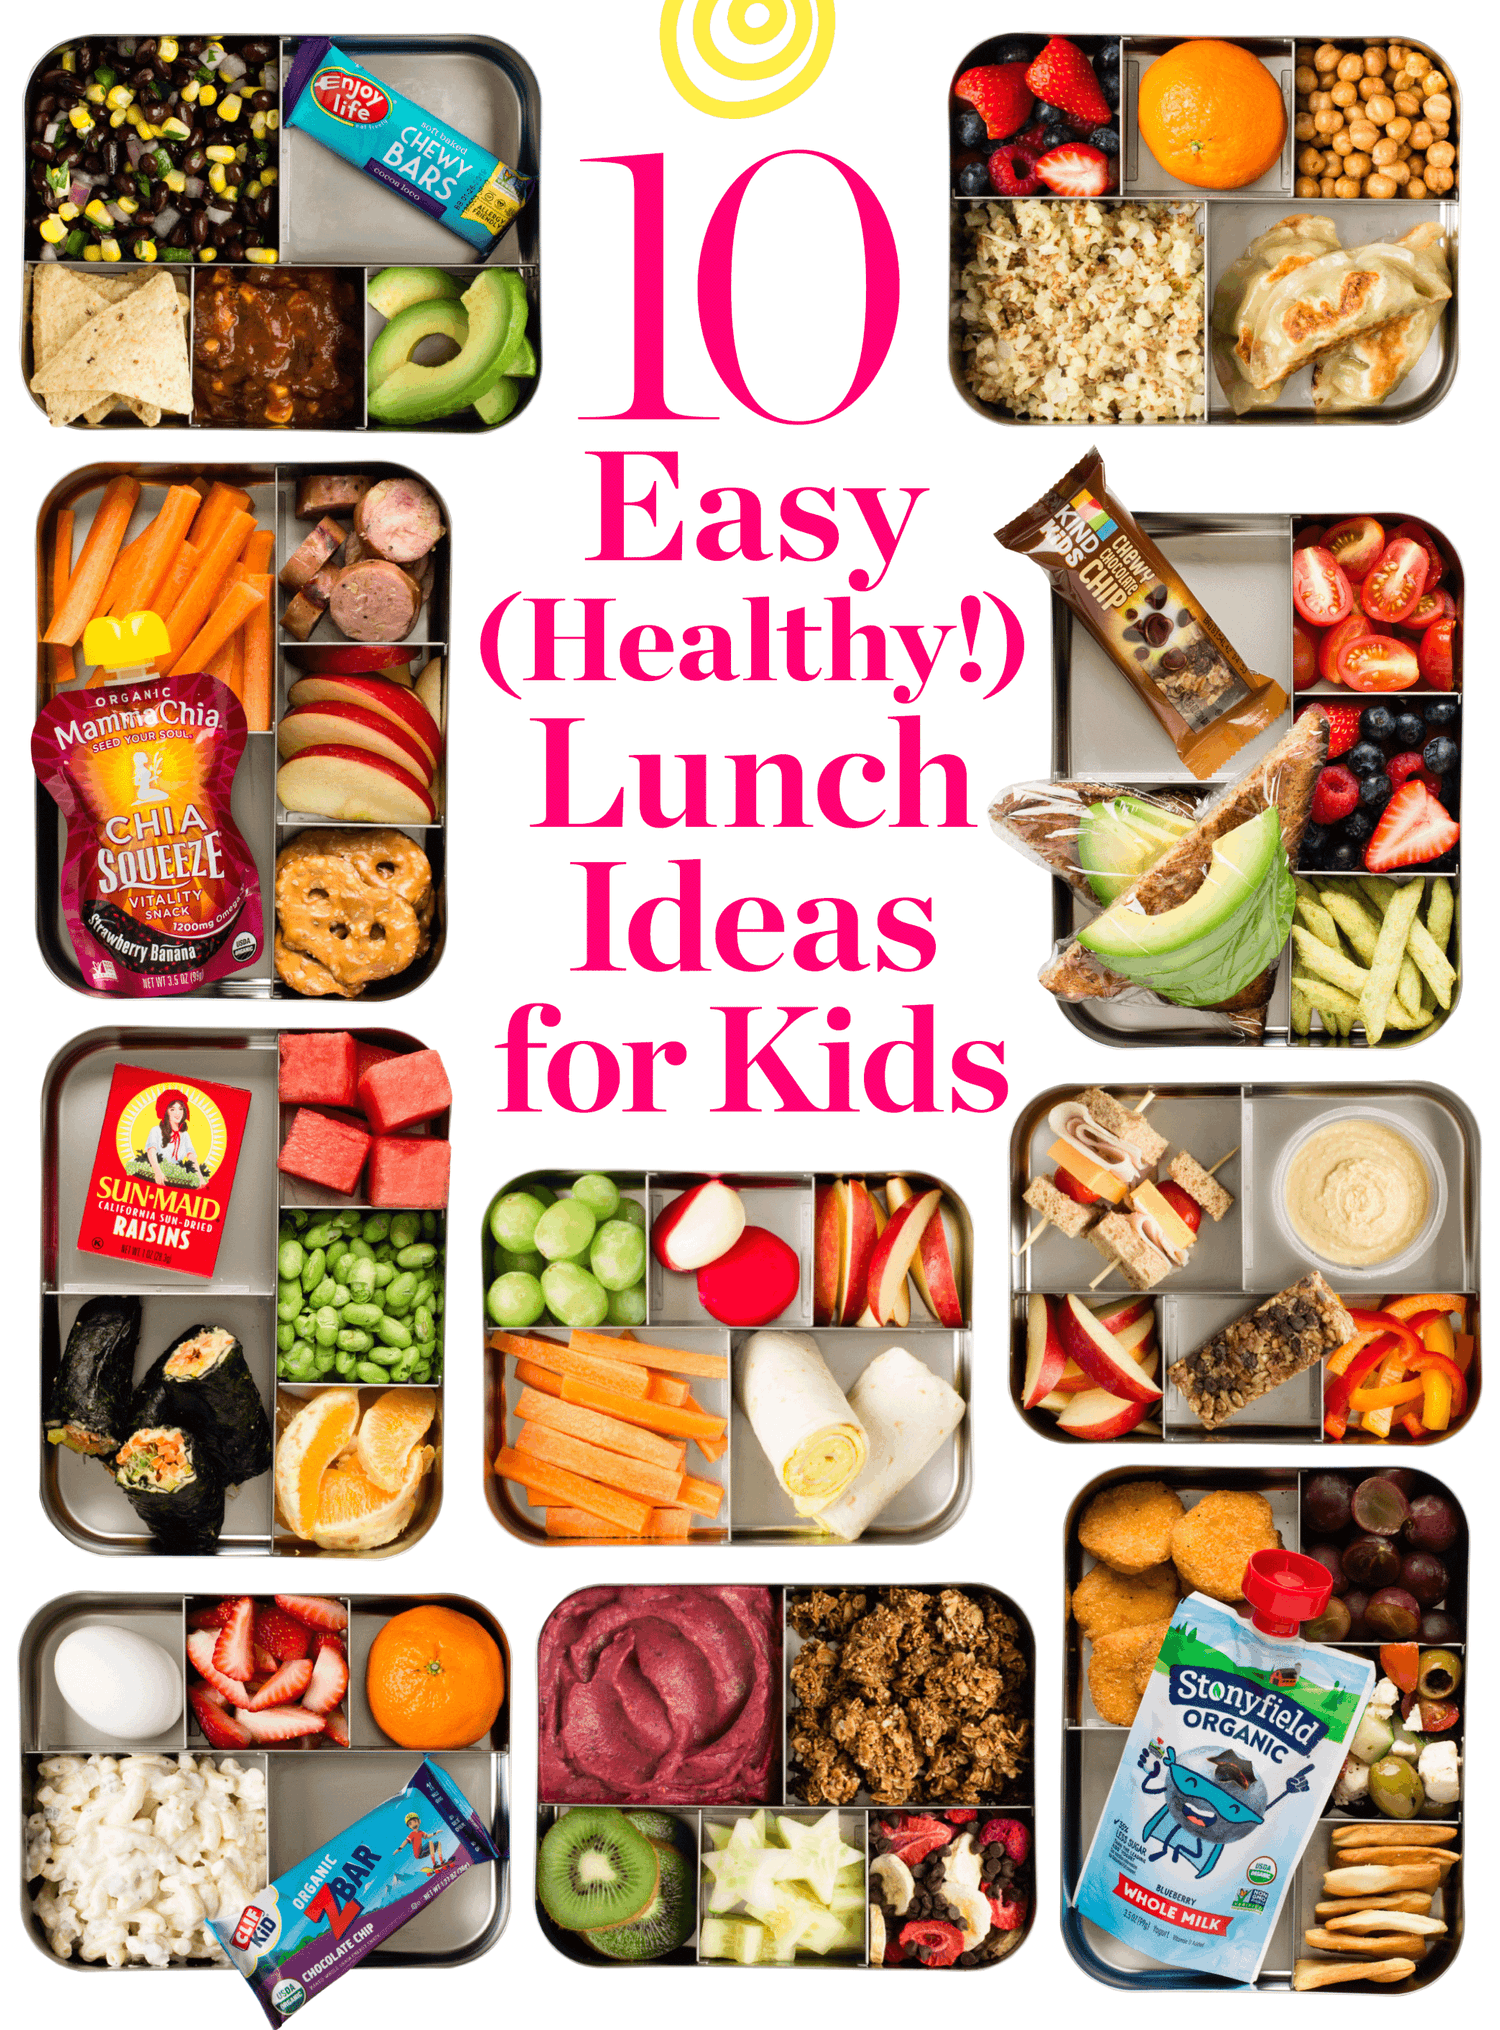 10 Extra-Easy and Healthy Lunch Ideas for Kids images